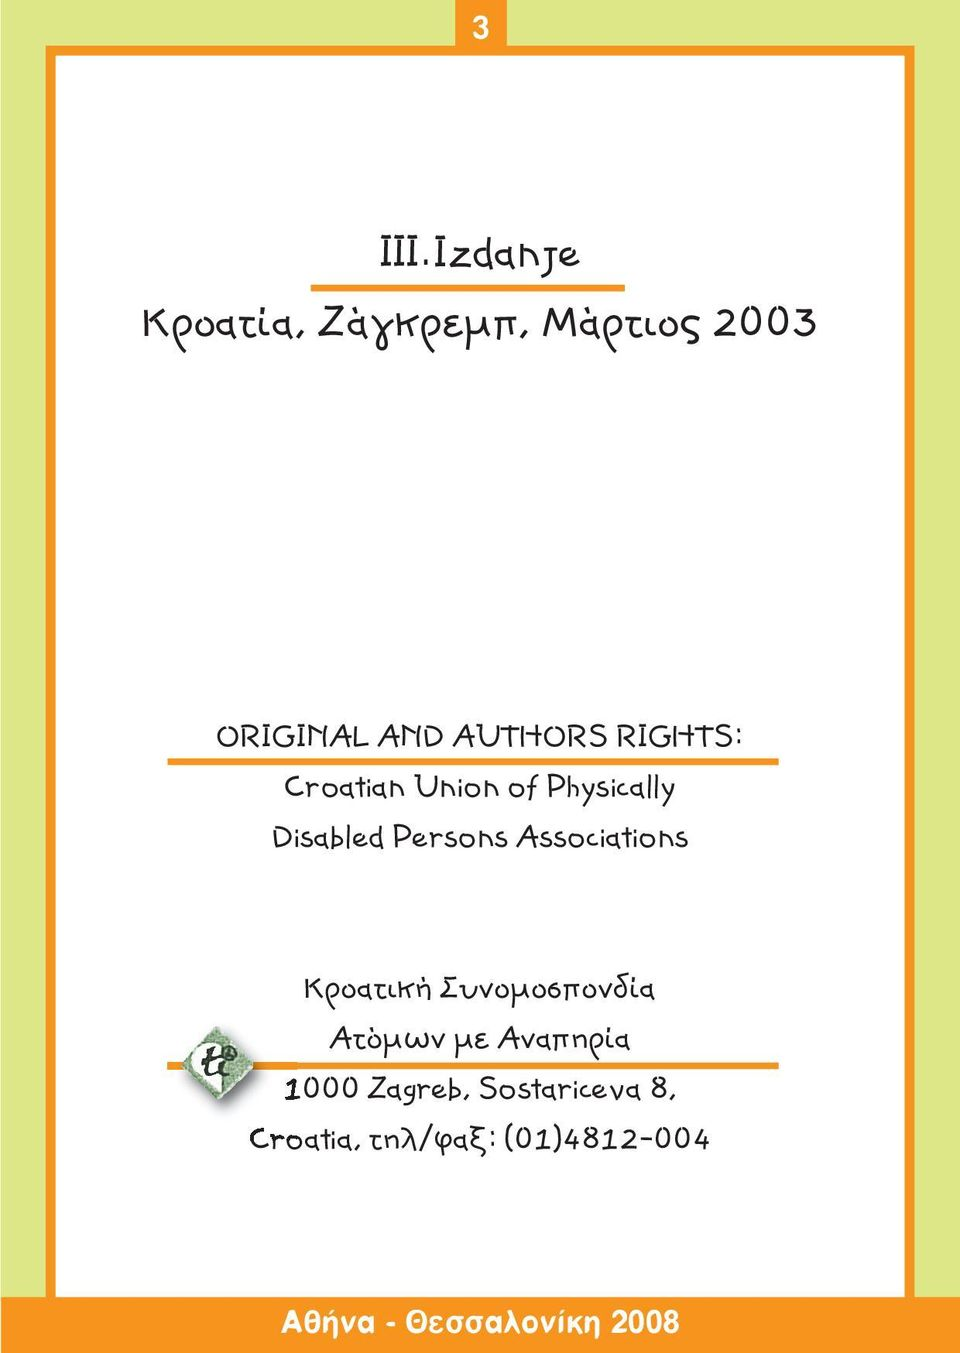 AUTHORS RIGHTS: Croatian Union of Physically Disabled